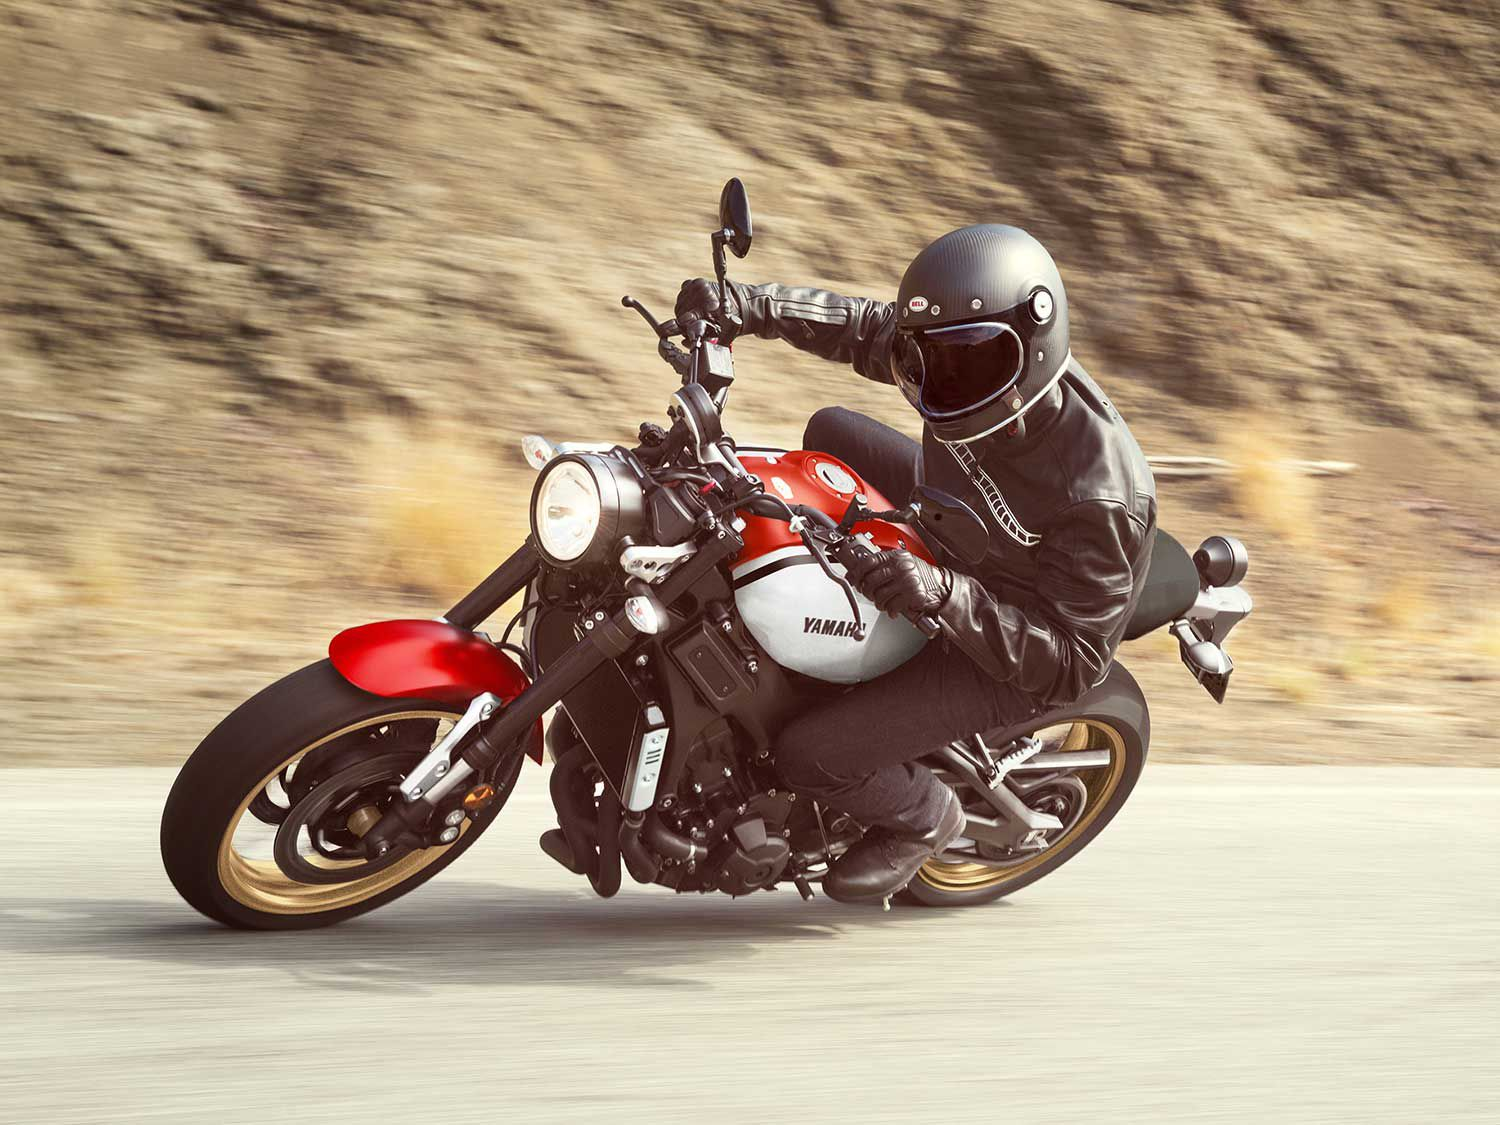 """Three traction control modes help keep the XSR900 hooked up, though one of the modes is simply """"Off."""""""